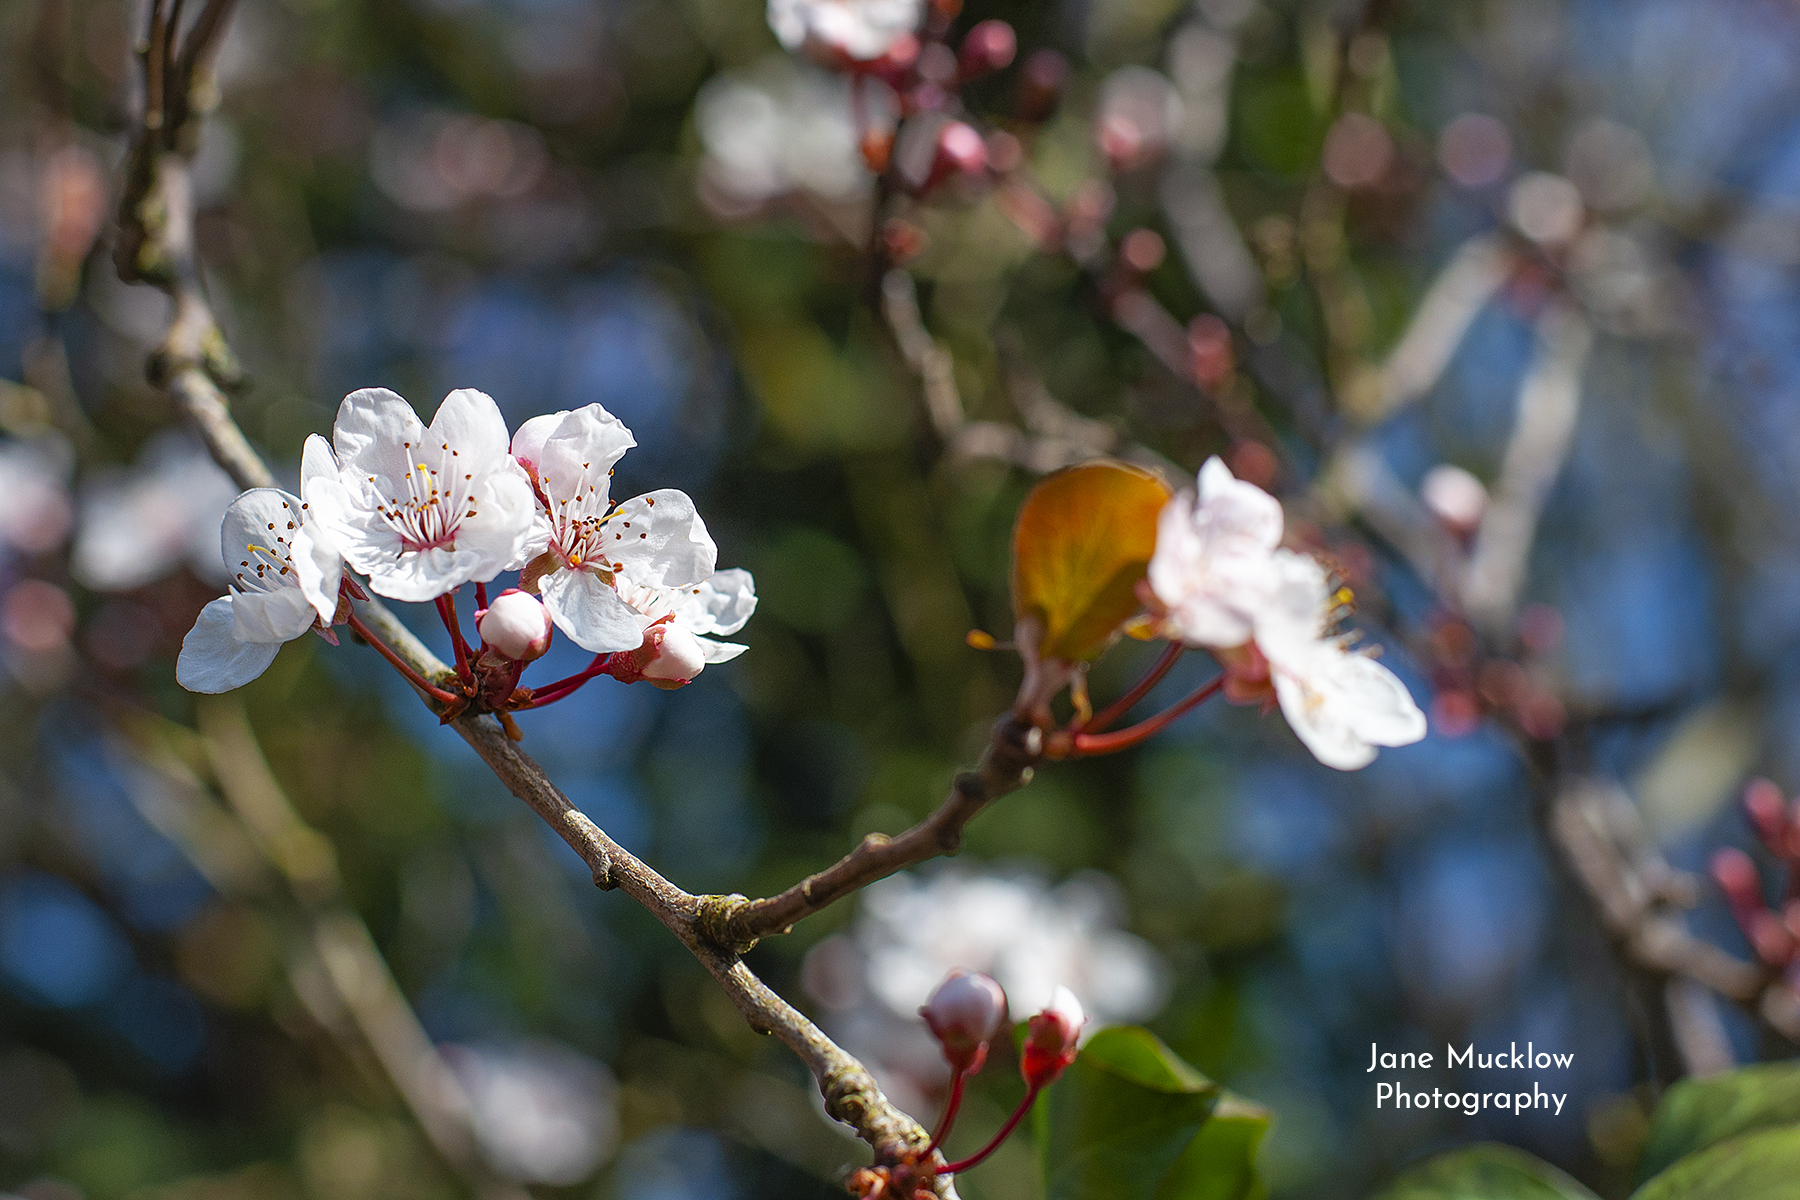 Photo of early flowering cherry blossom, by Jane Mucklow